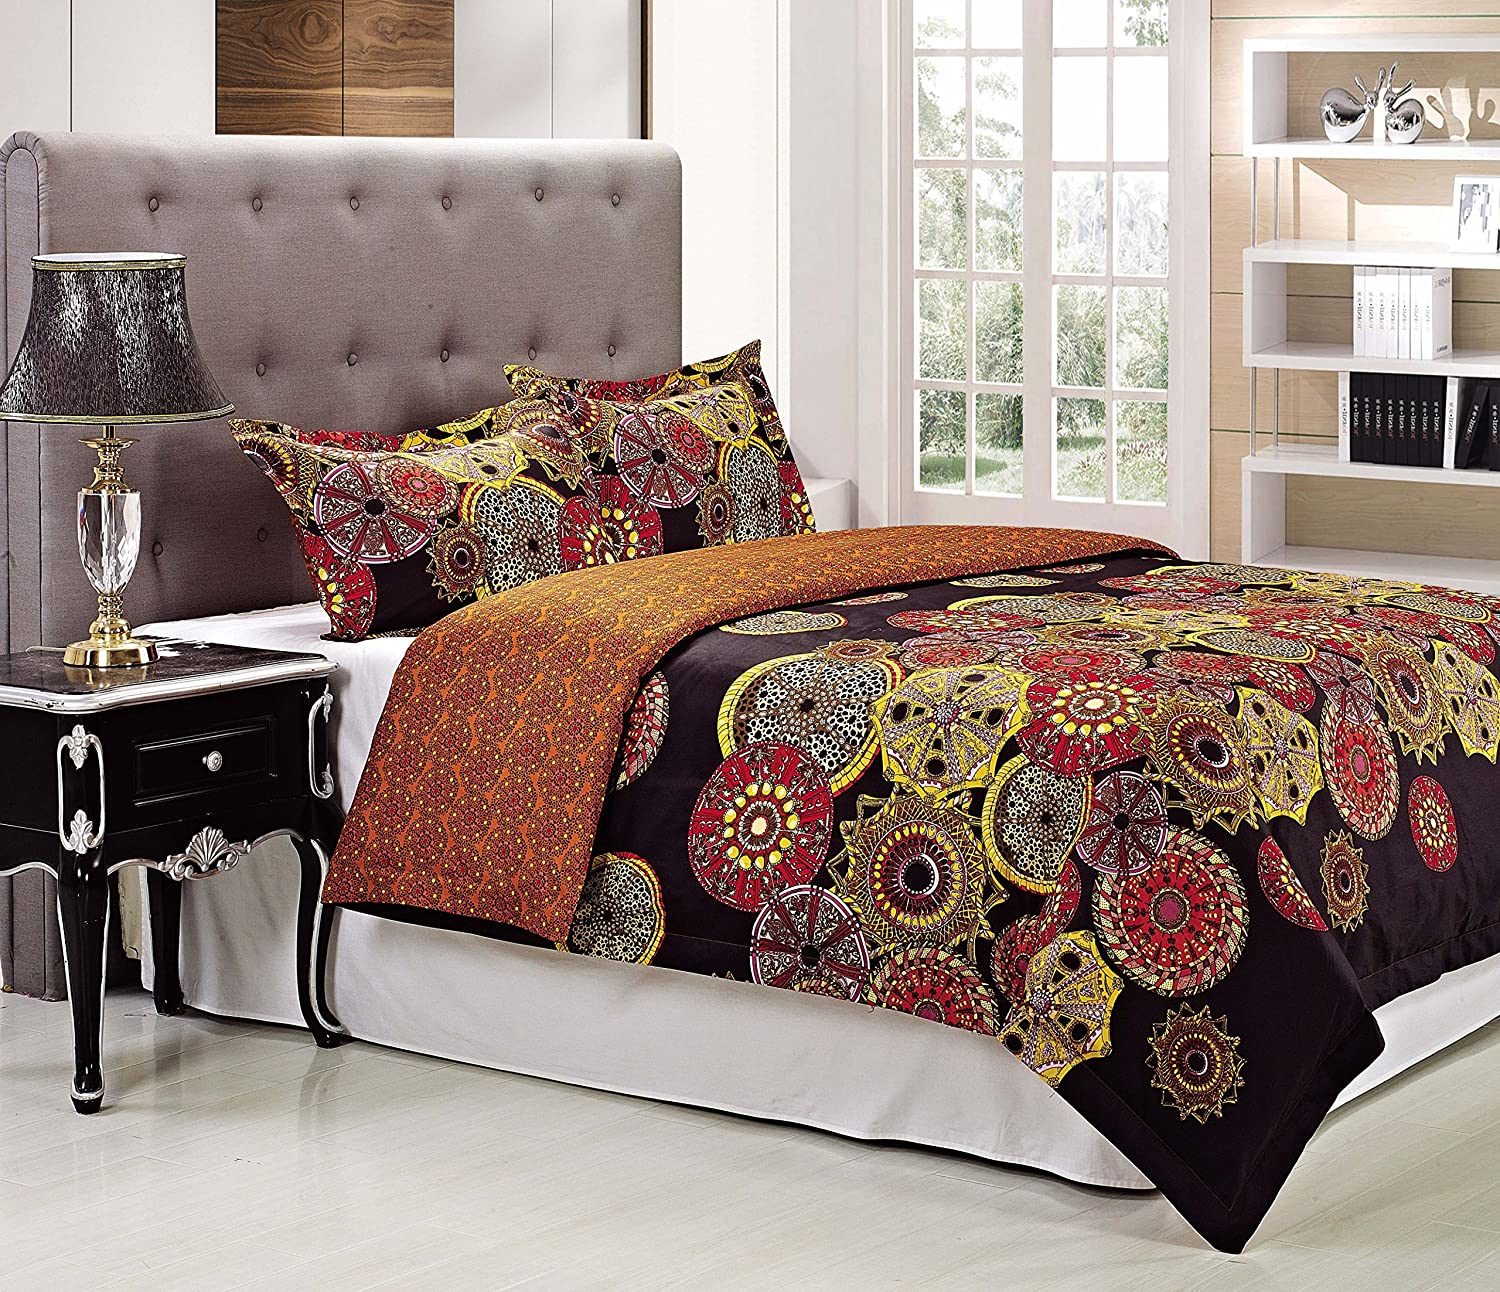 300 Thread Count Sunburst Duvet Cover Set